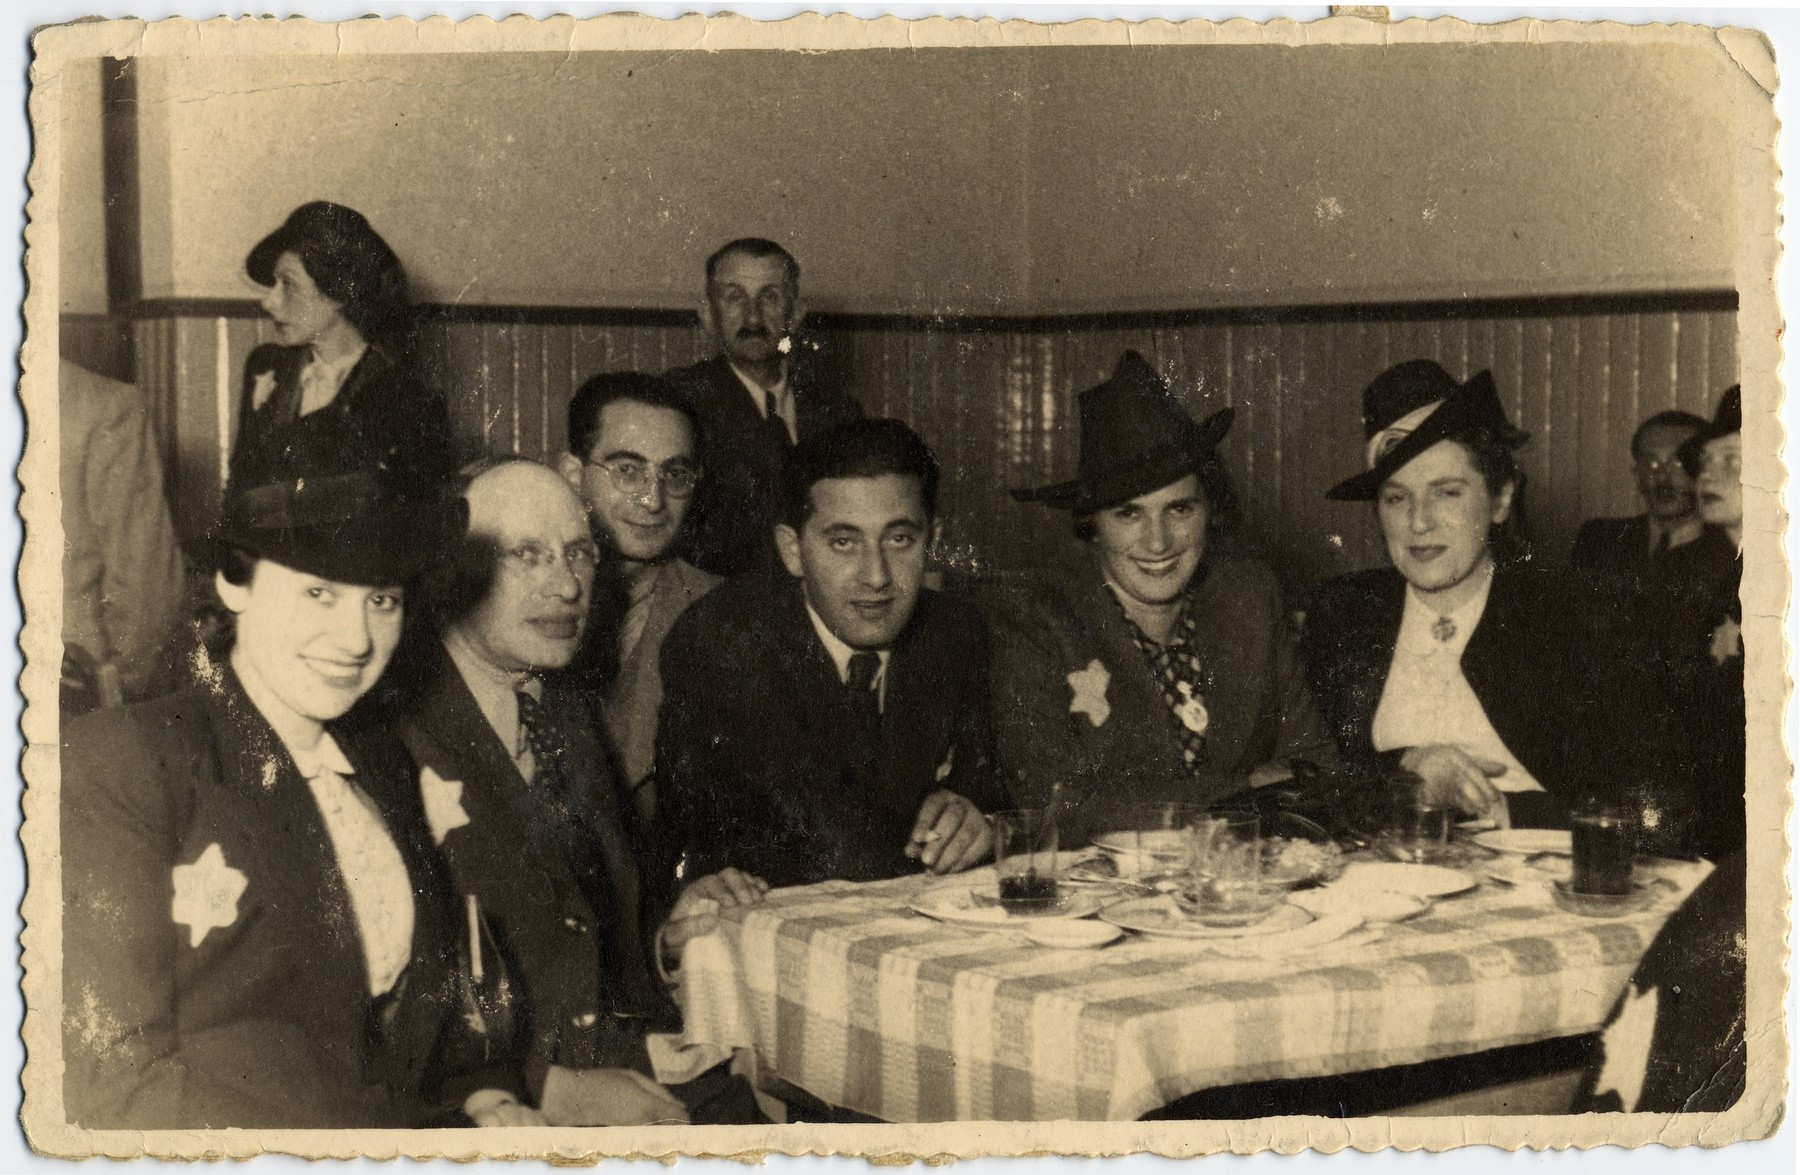 Group portrait of Jewish men and women in a cafe in the Lodz ghetto.   Pictured from left to right are: Dora Fuks (Rumkowski's secretary), David Warszawski (director of the tailoring workskops), Leon Fajtlowicz (in the back, donor's maternal uncle, in charge of the leather workshops), Aron Jakubowicz? (director of workshops), Regina Jakubowicz and unknown.